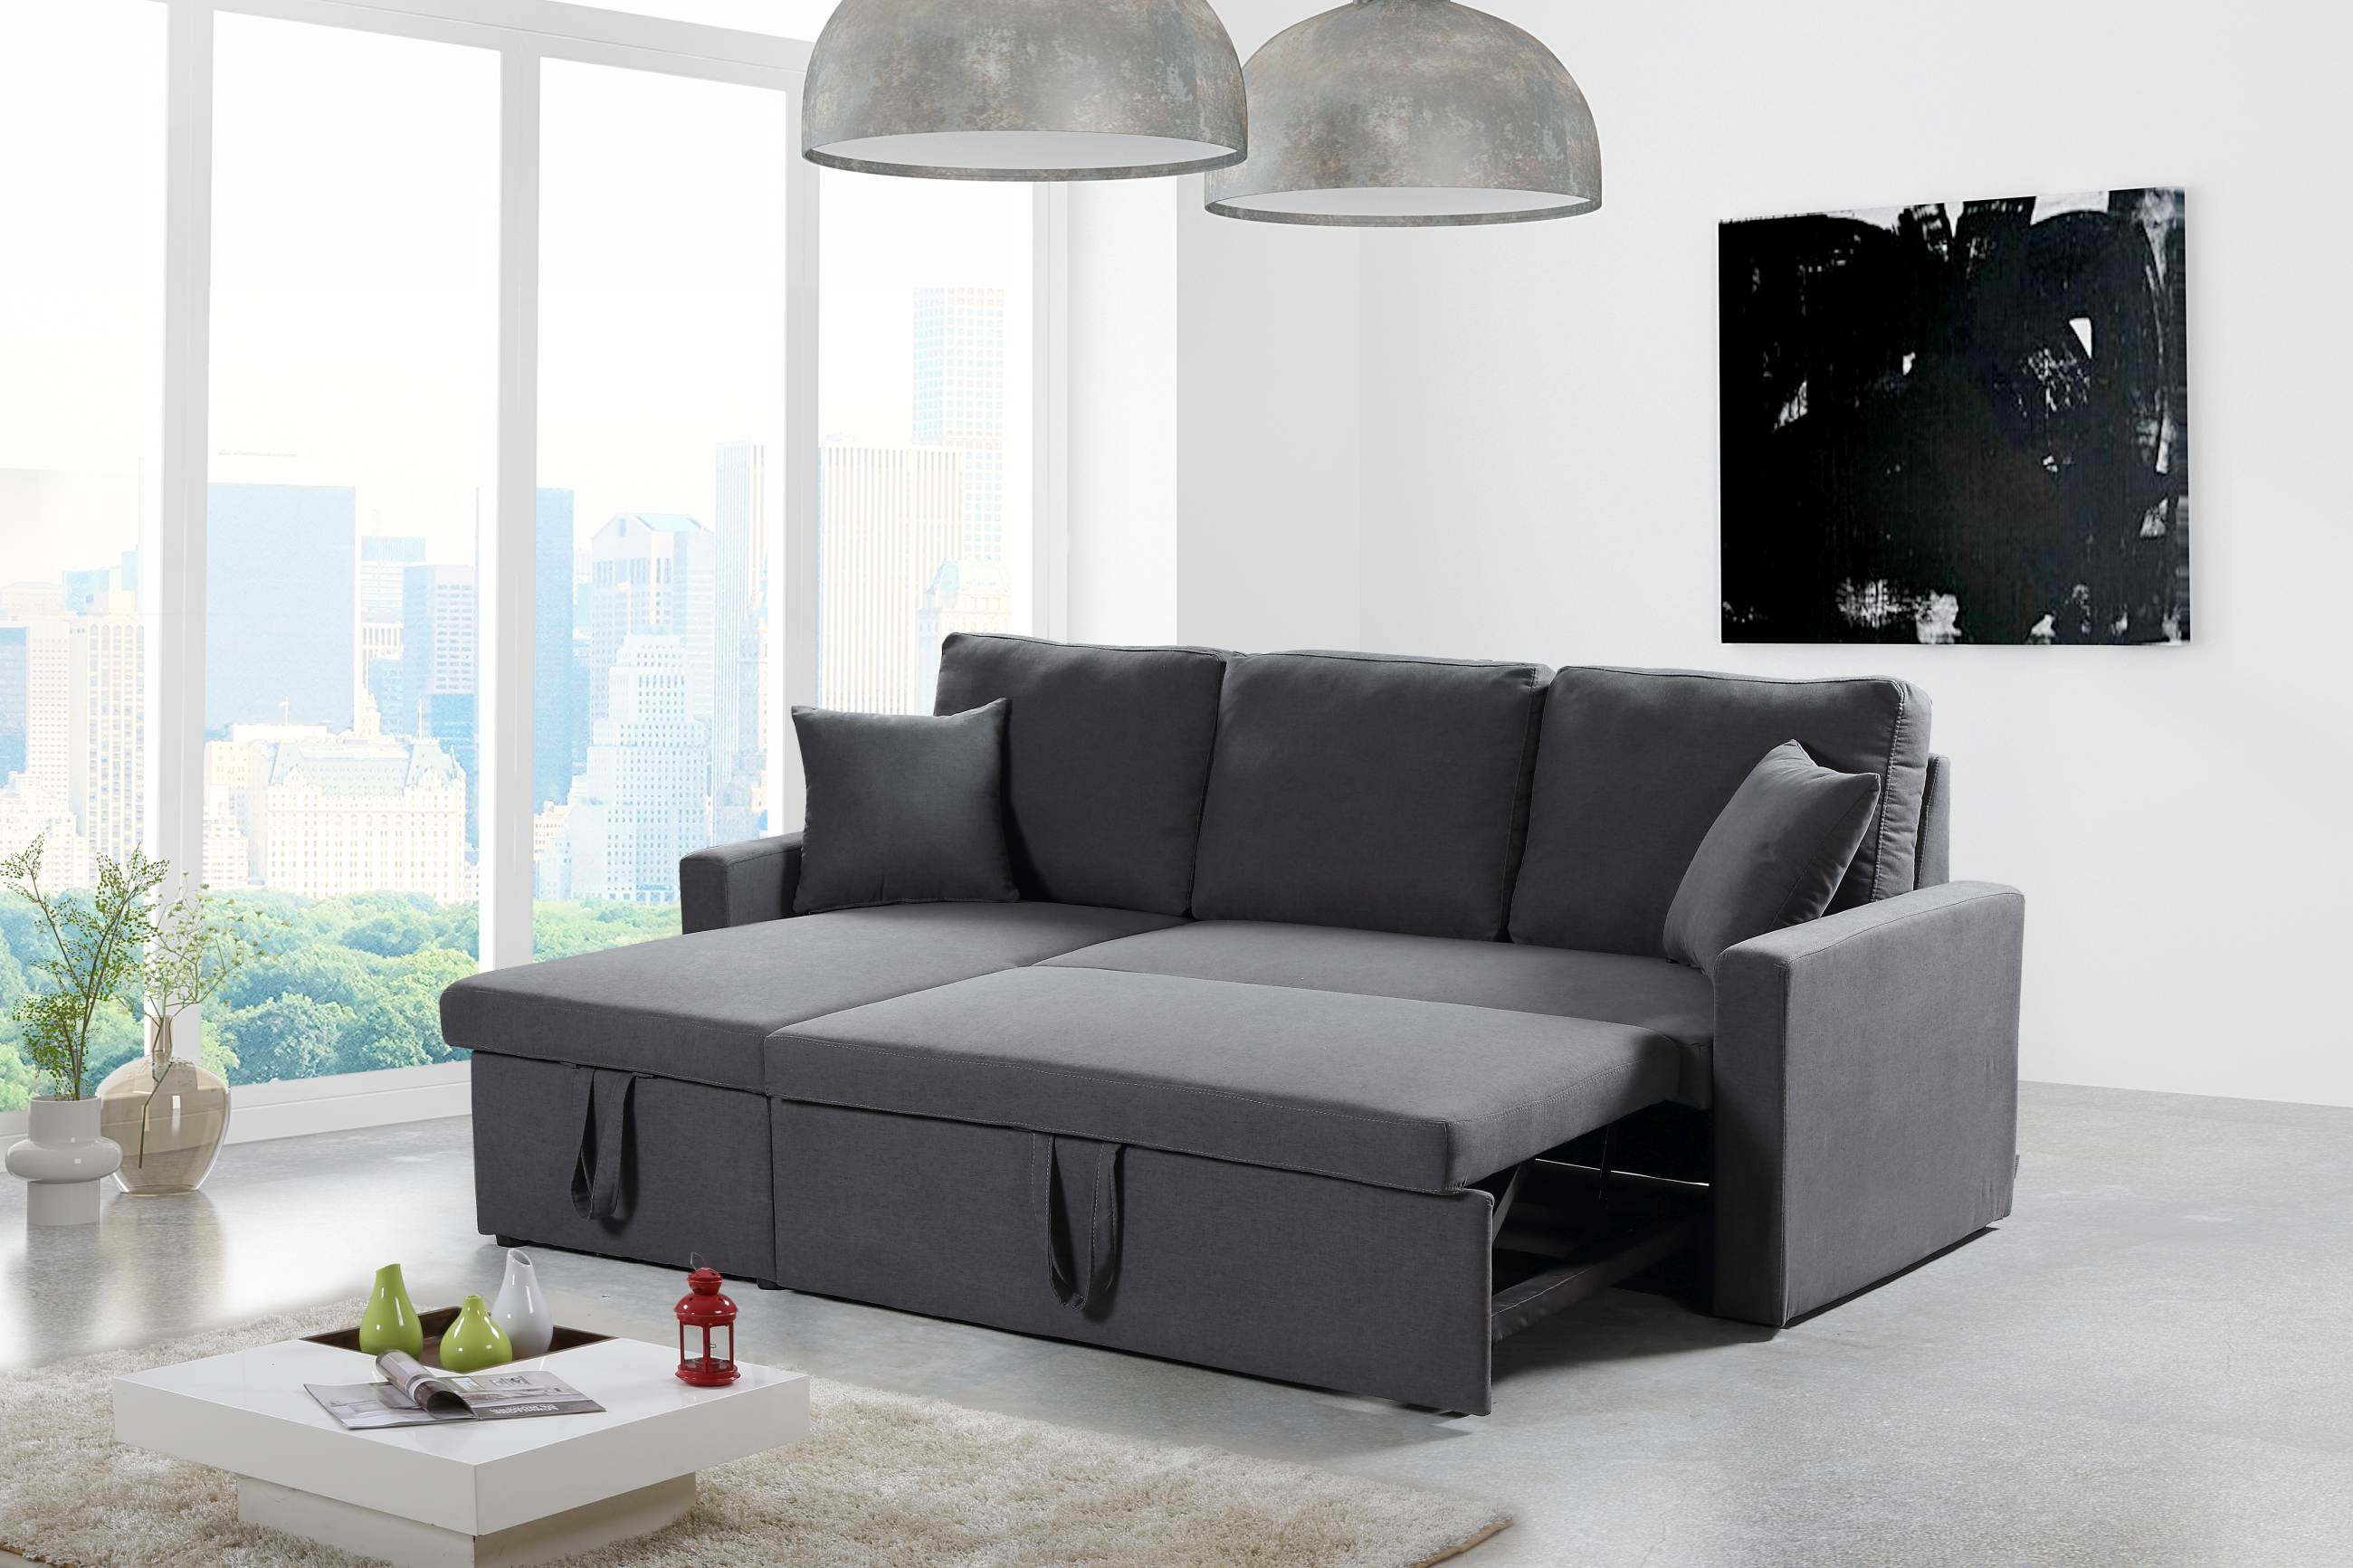 Astonishing Zara Reversible Sectional Sofa 3 In 1 Sofa Bed Storage Charcoal Download Free Architecture Designs Intelgarnamadebymaigaardcom